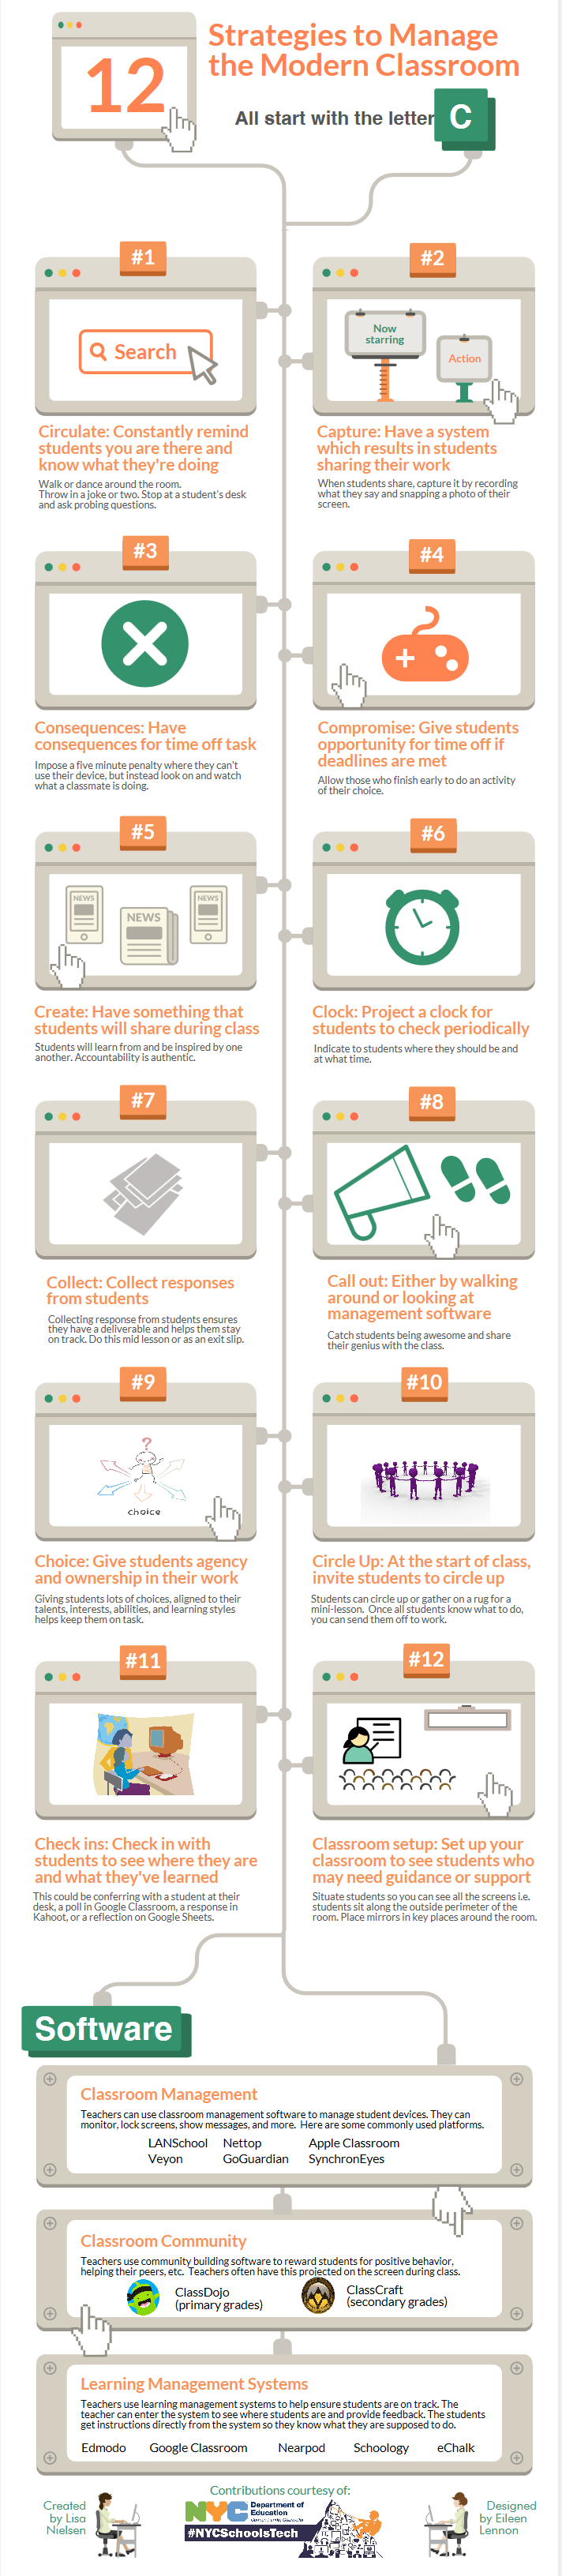 12 Strategies to Manage the Modern Classroom Infographic